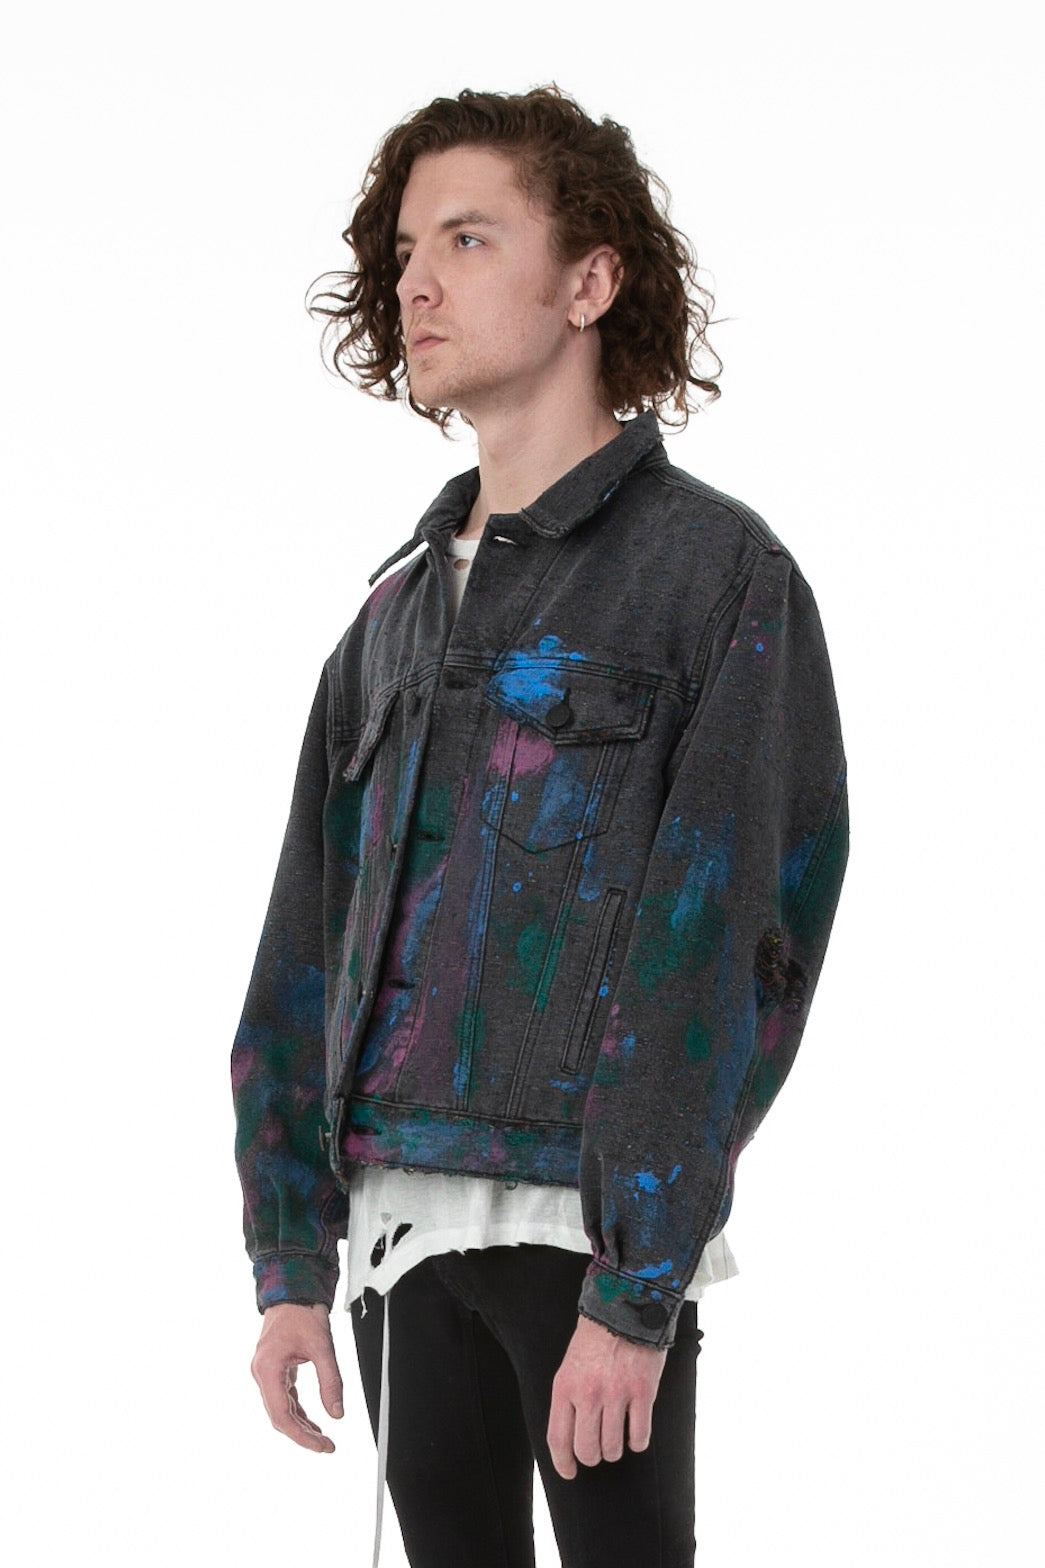 Side of Male Model Wearing Artists' Denim Jacket